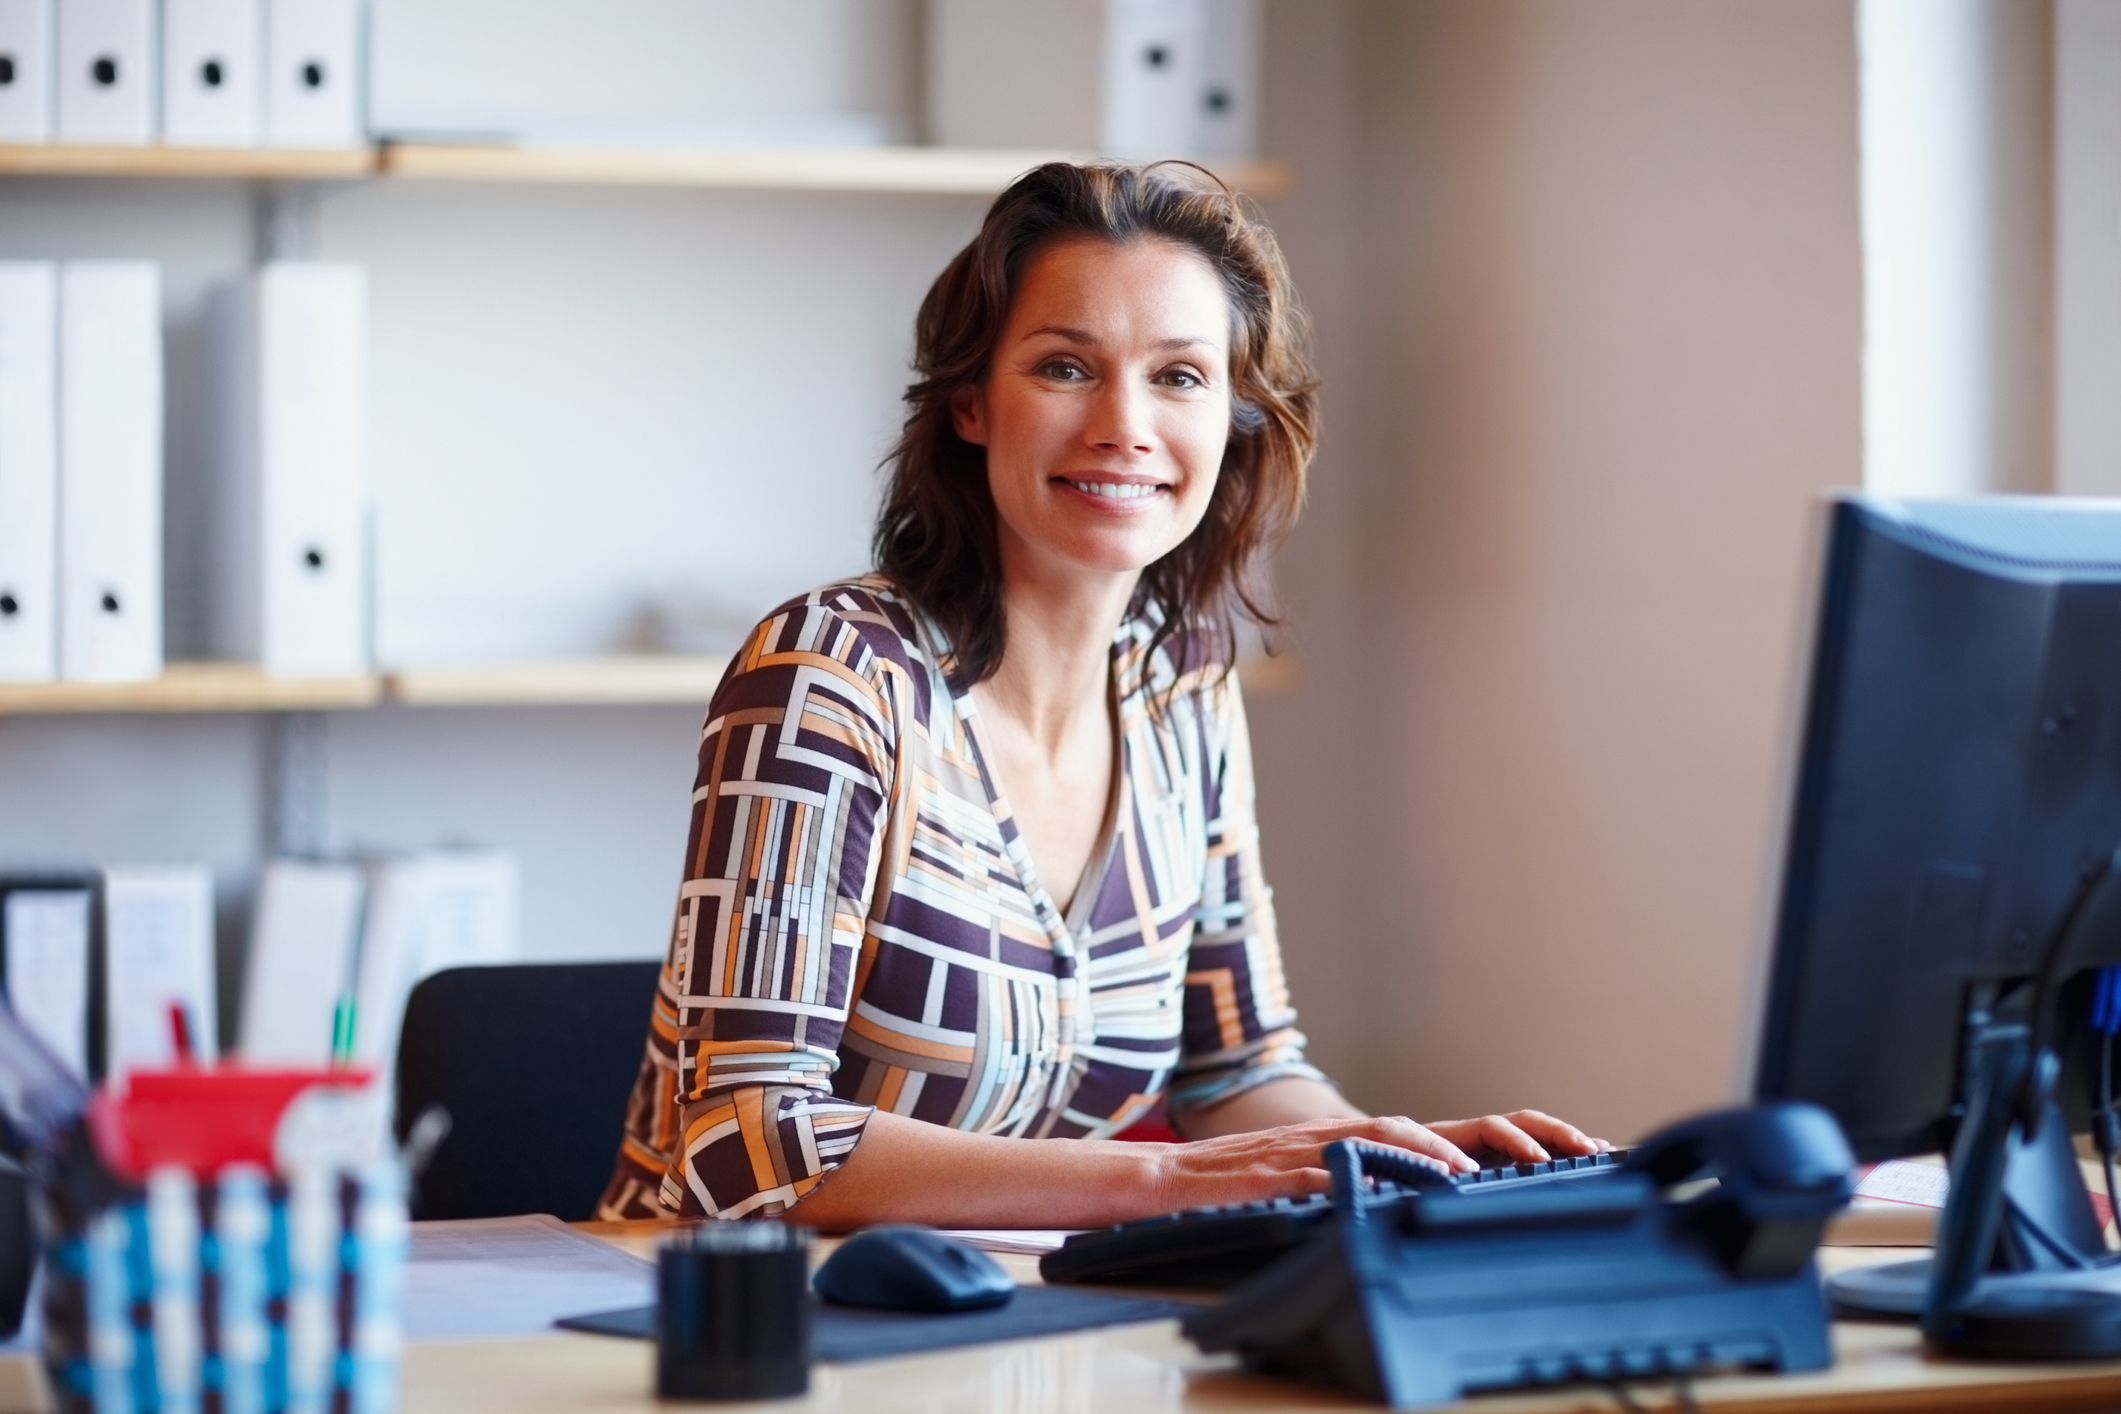 Portrait of a smiling mature businesswoman at office desk with a computer